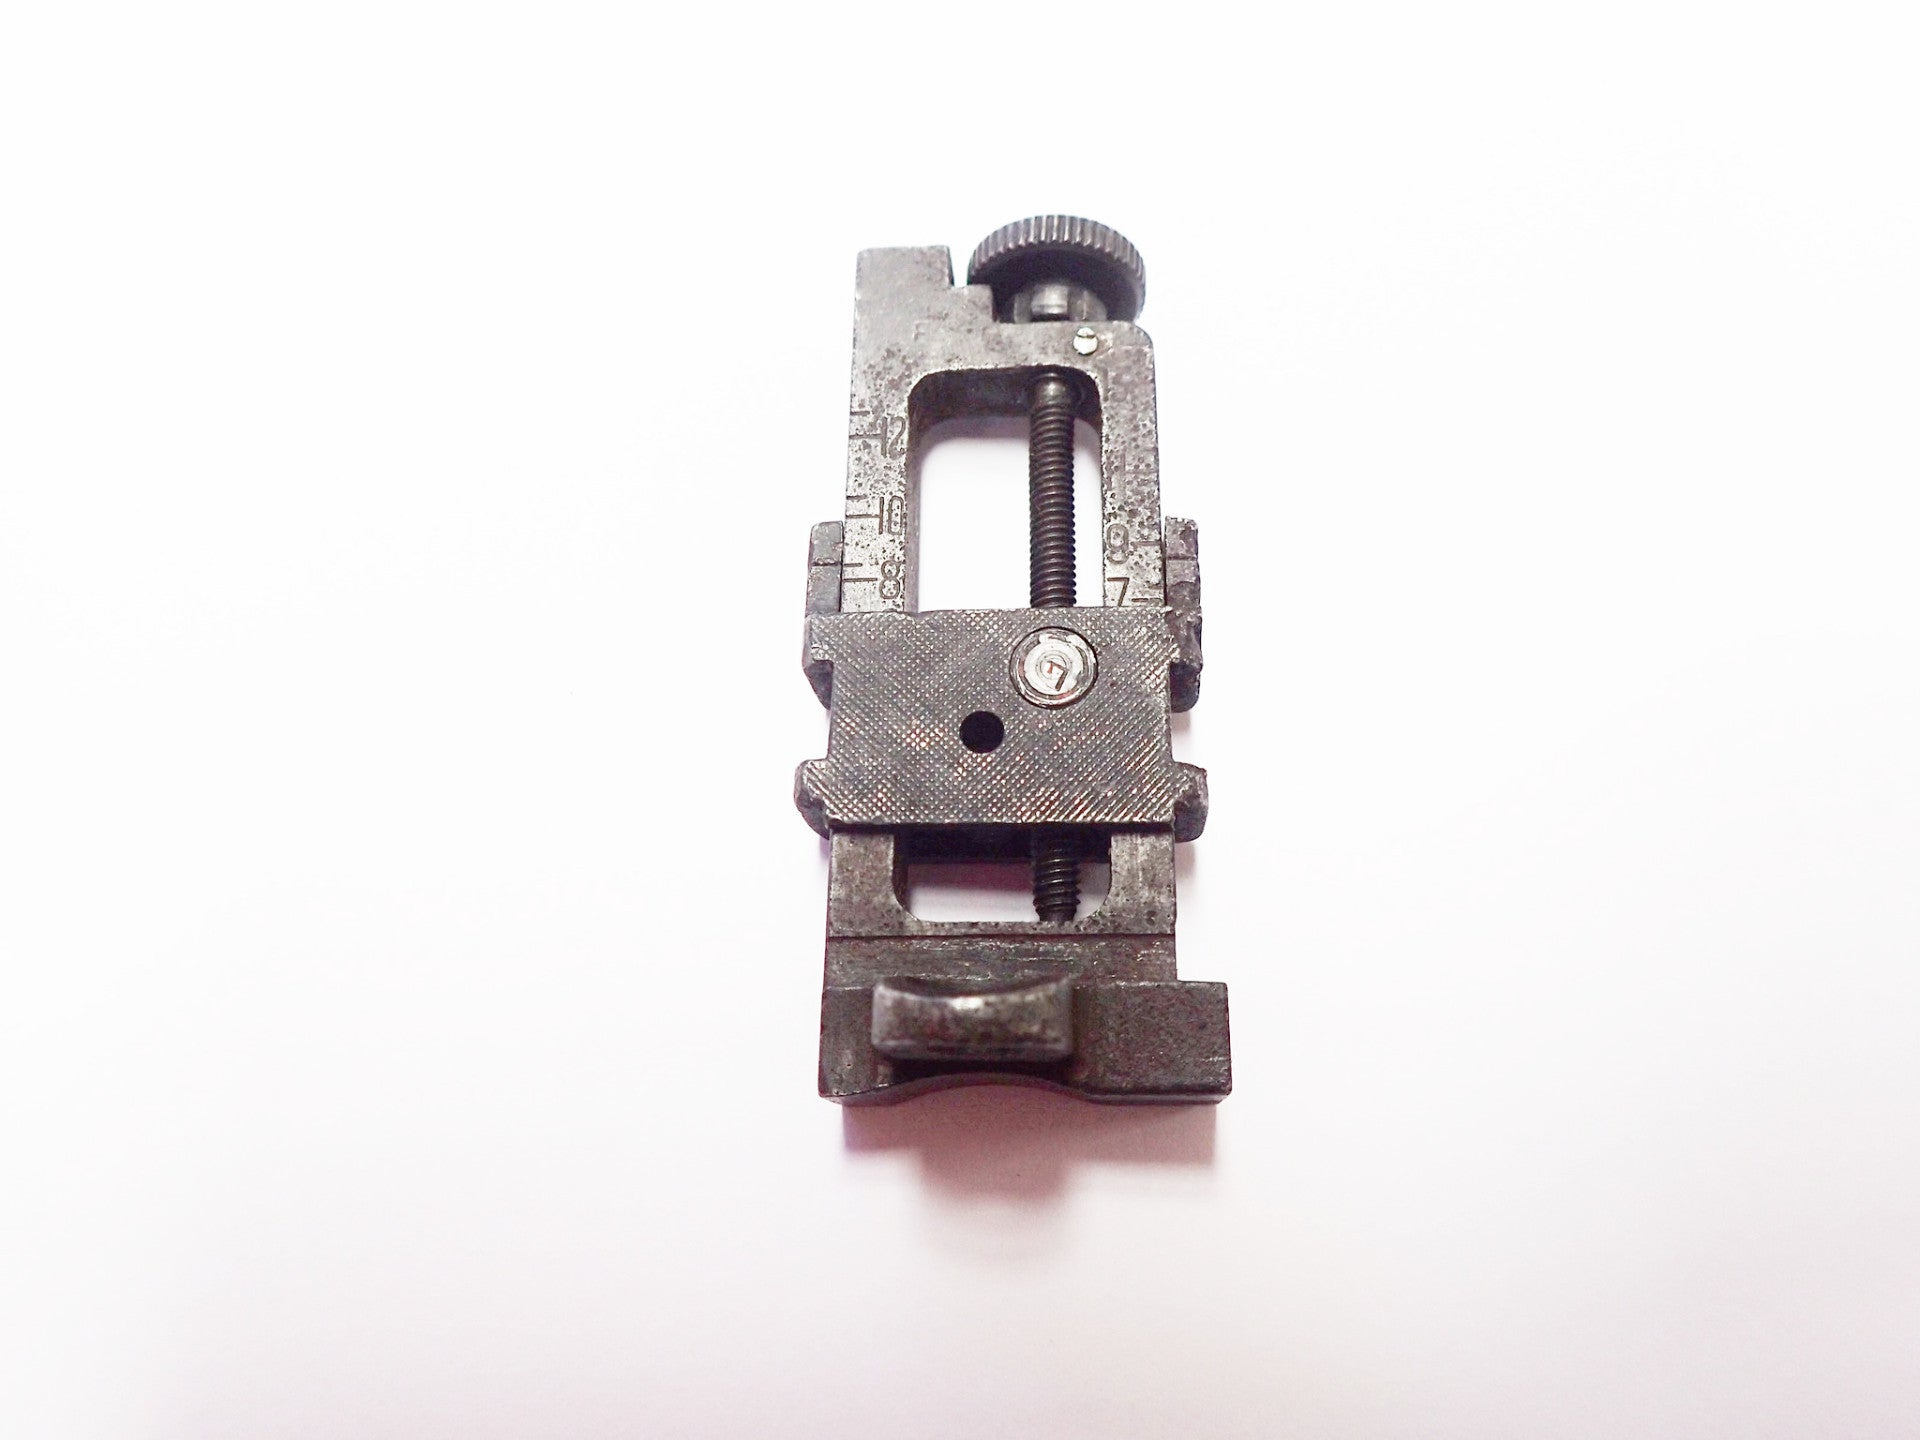 Enfield  No4 Rear Sight (SMLEPN54)